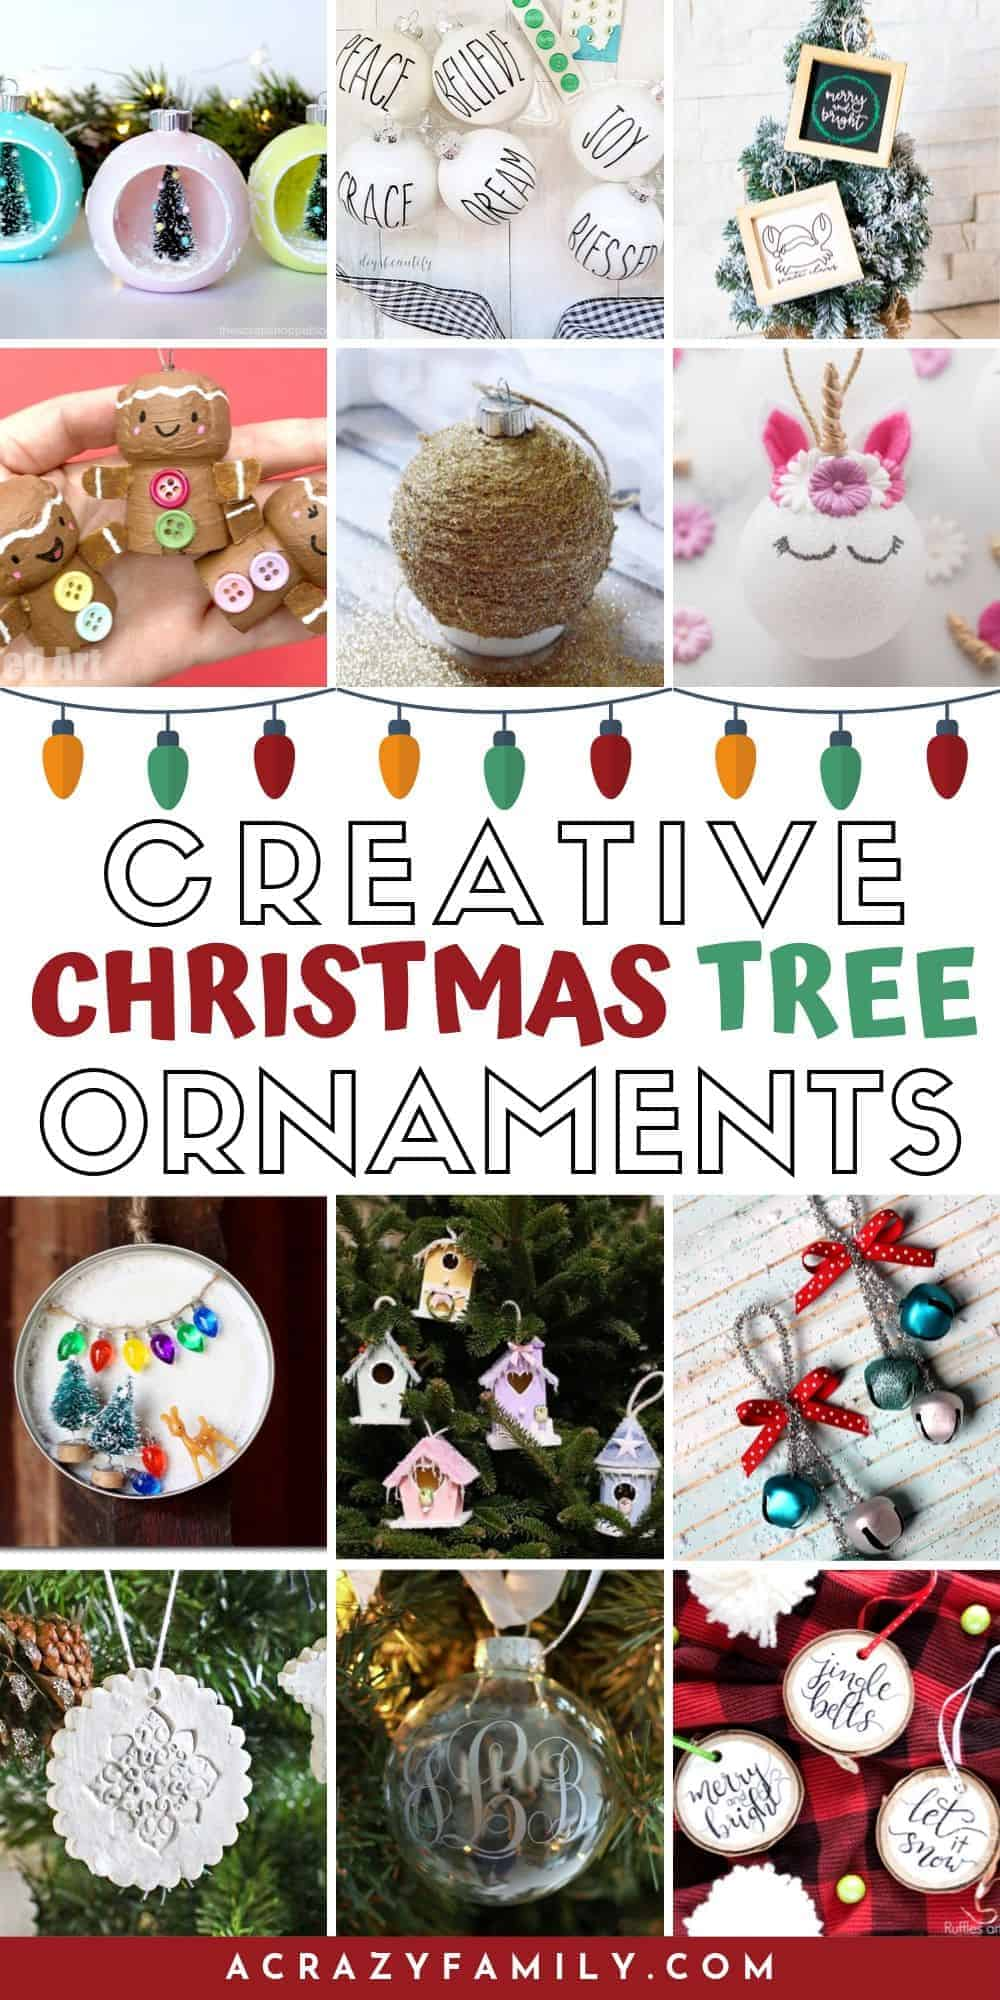 21 Creative Christmas Tree Ornaments